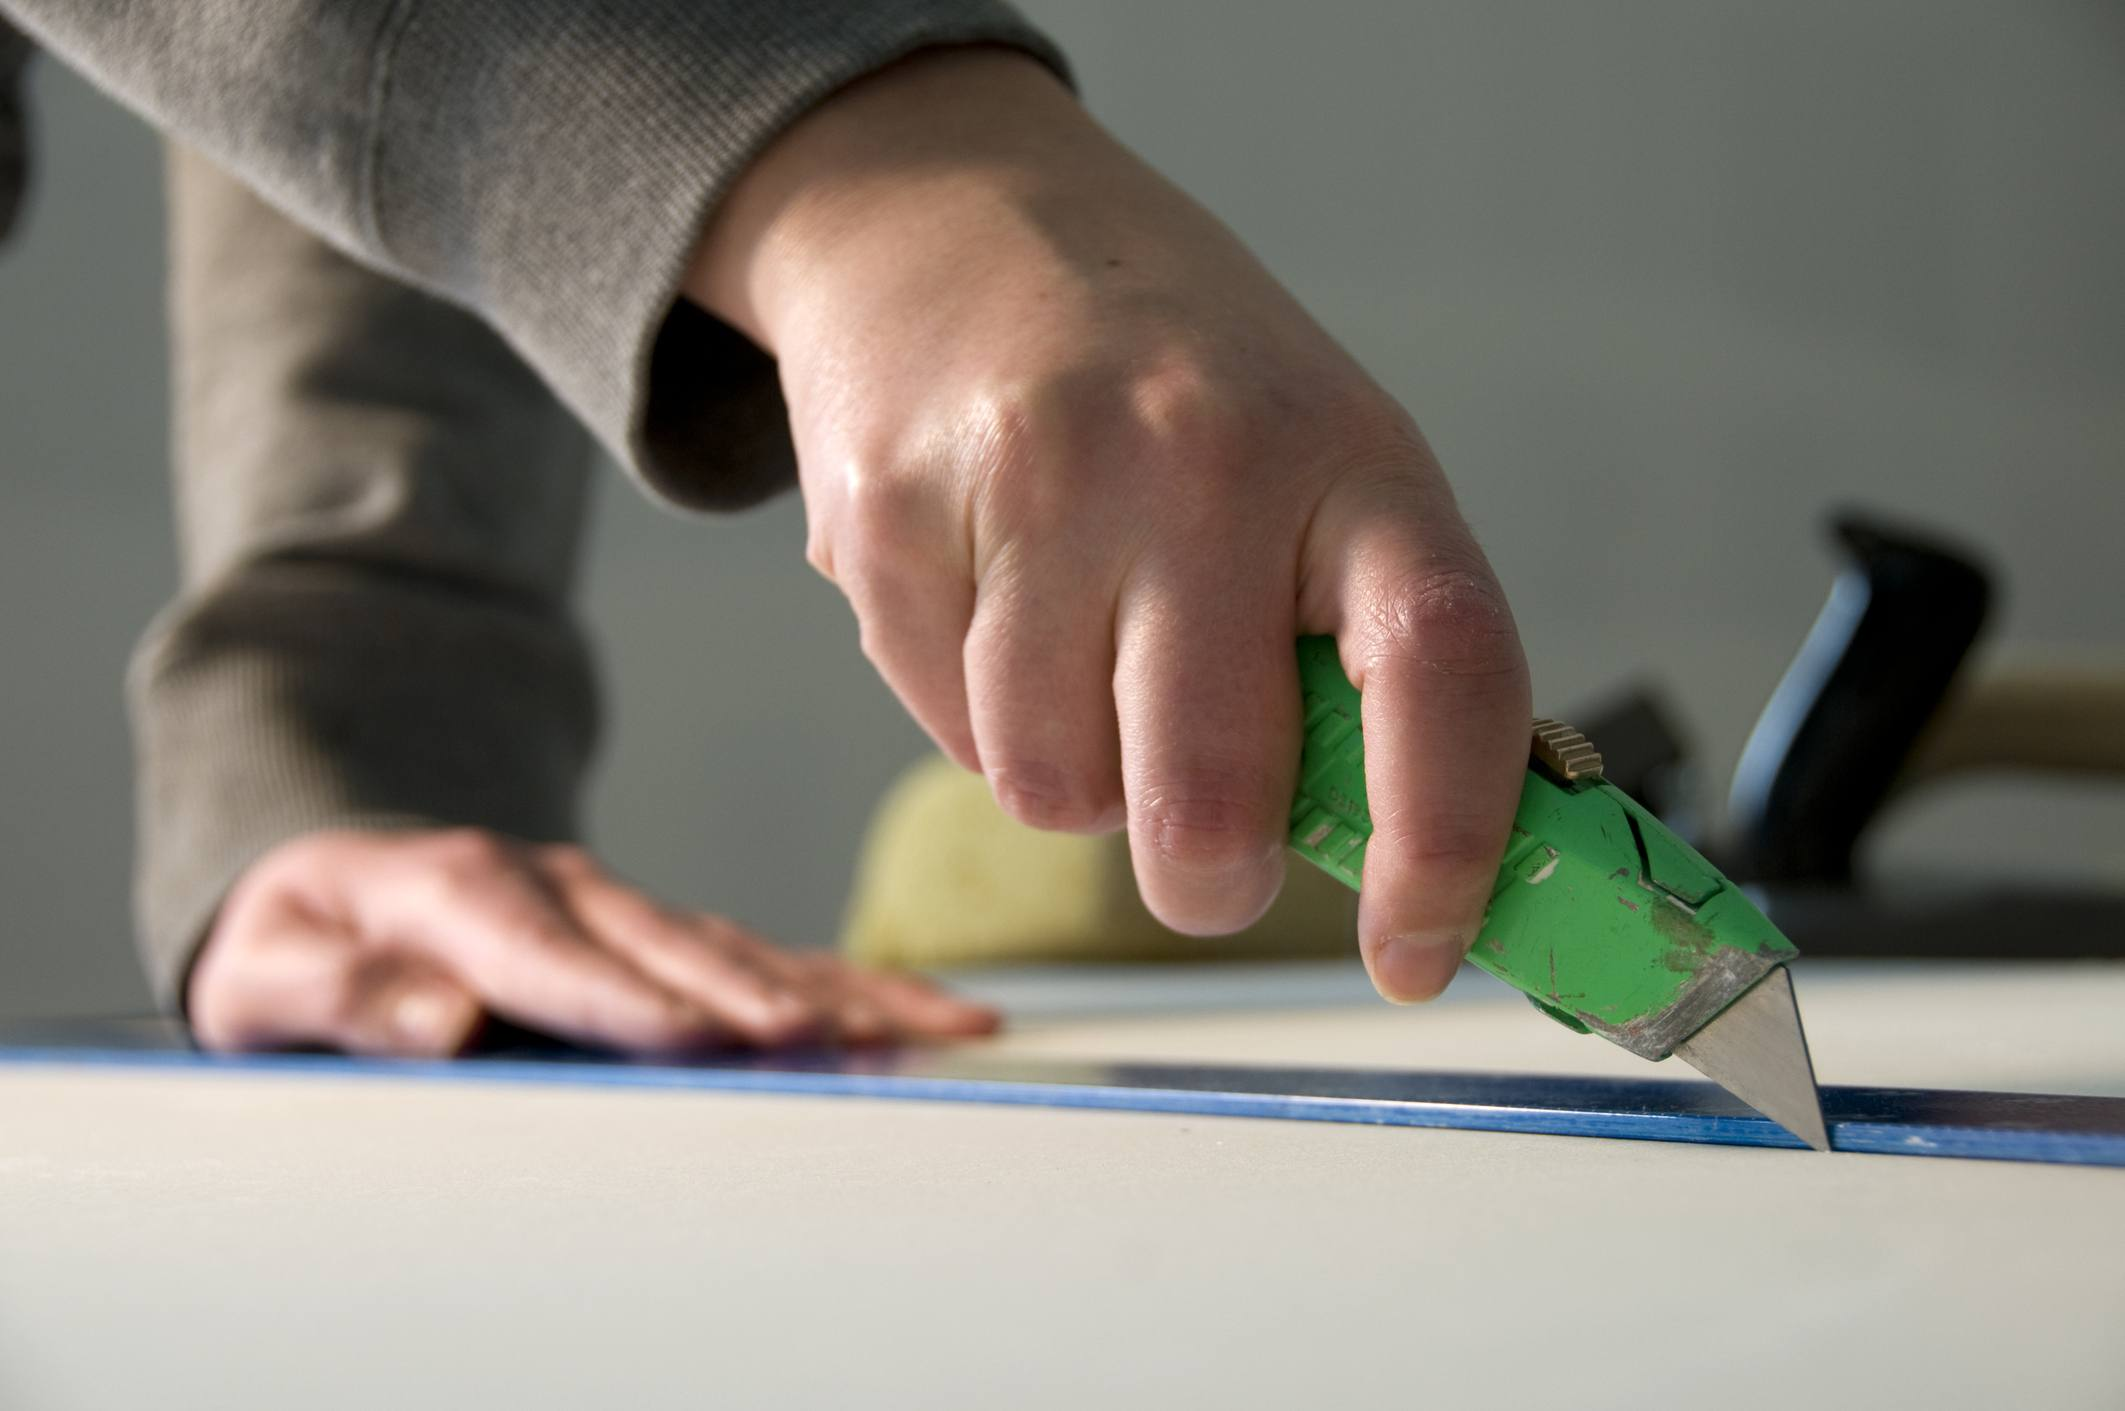 Cutting with knife